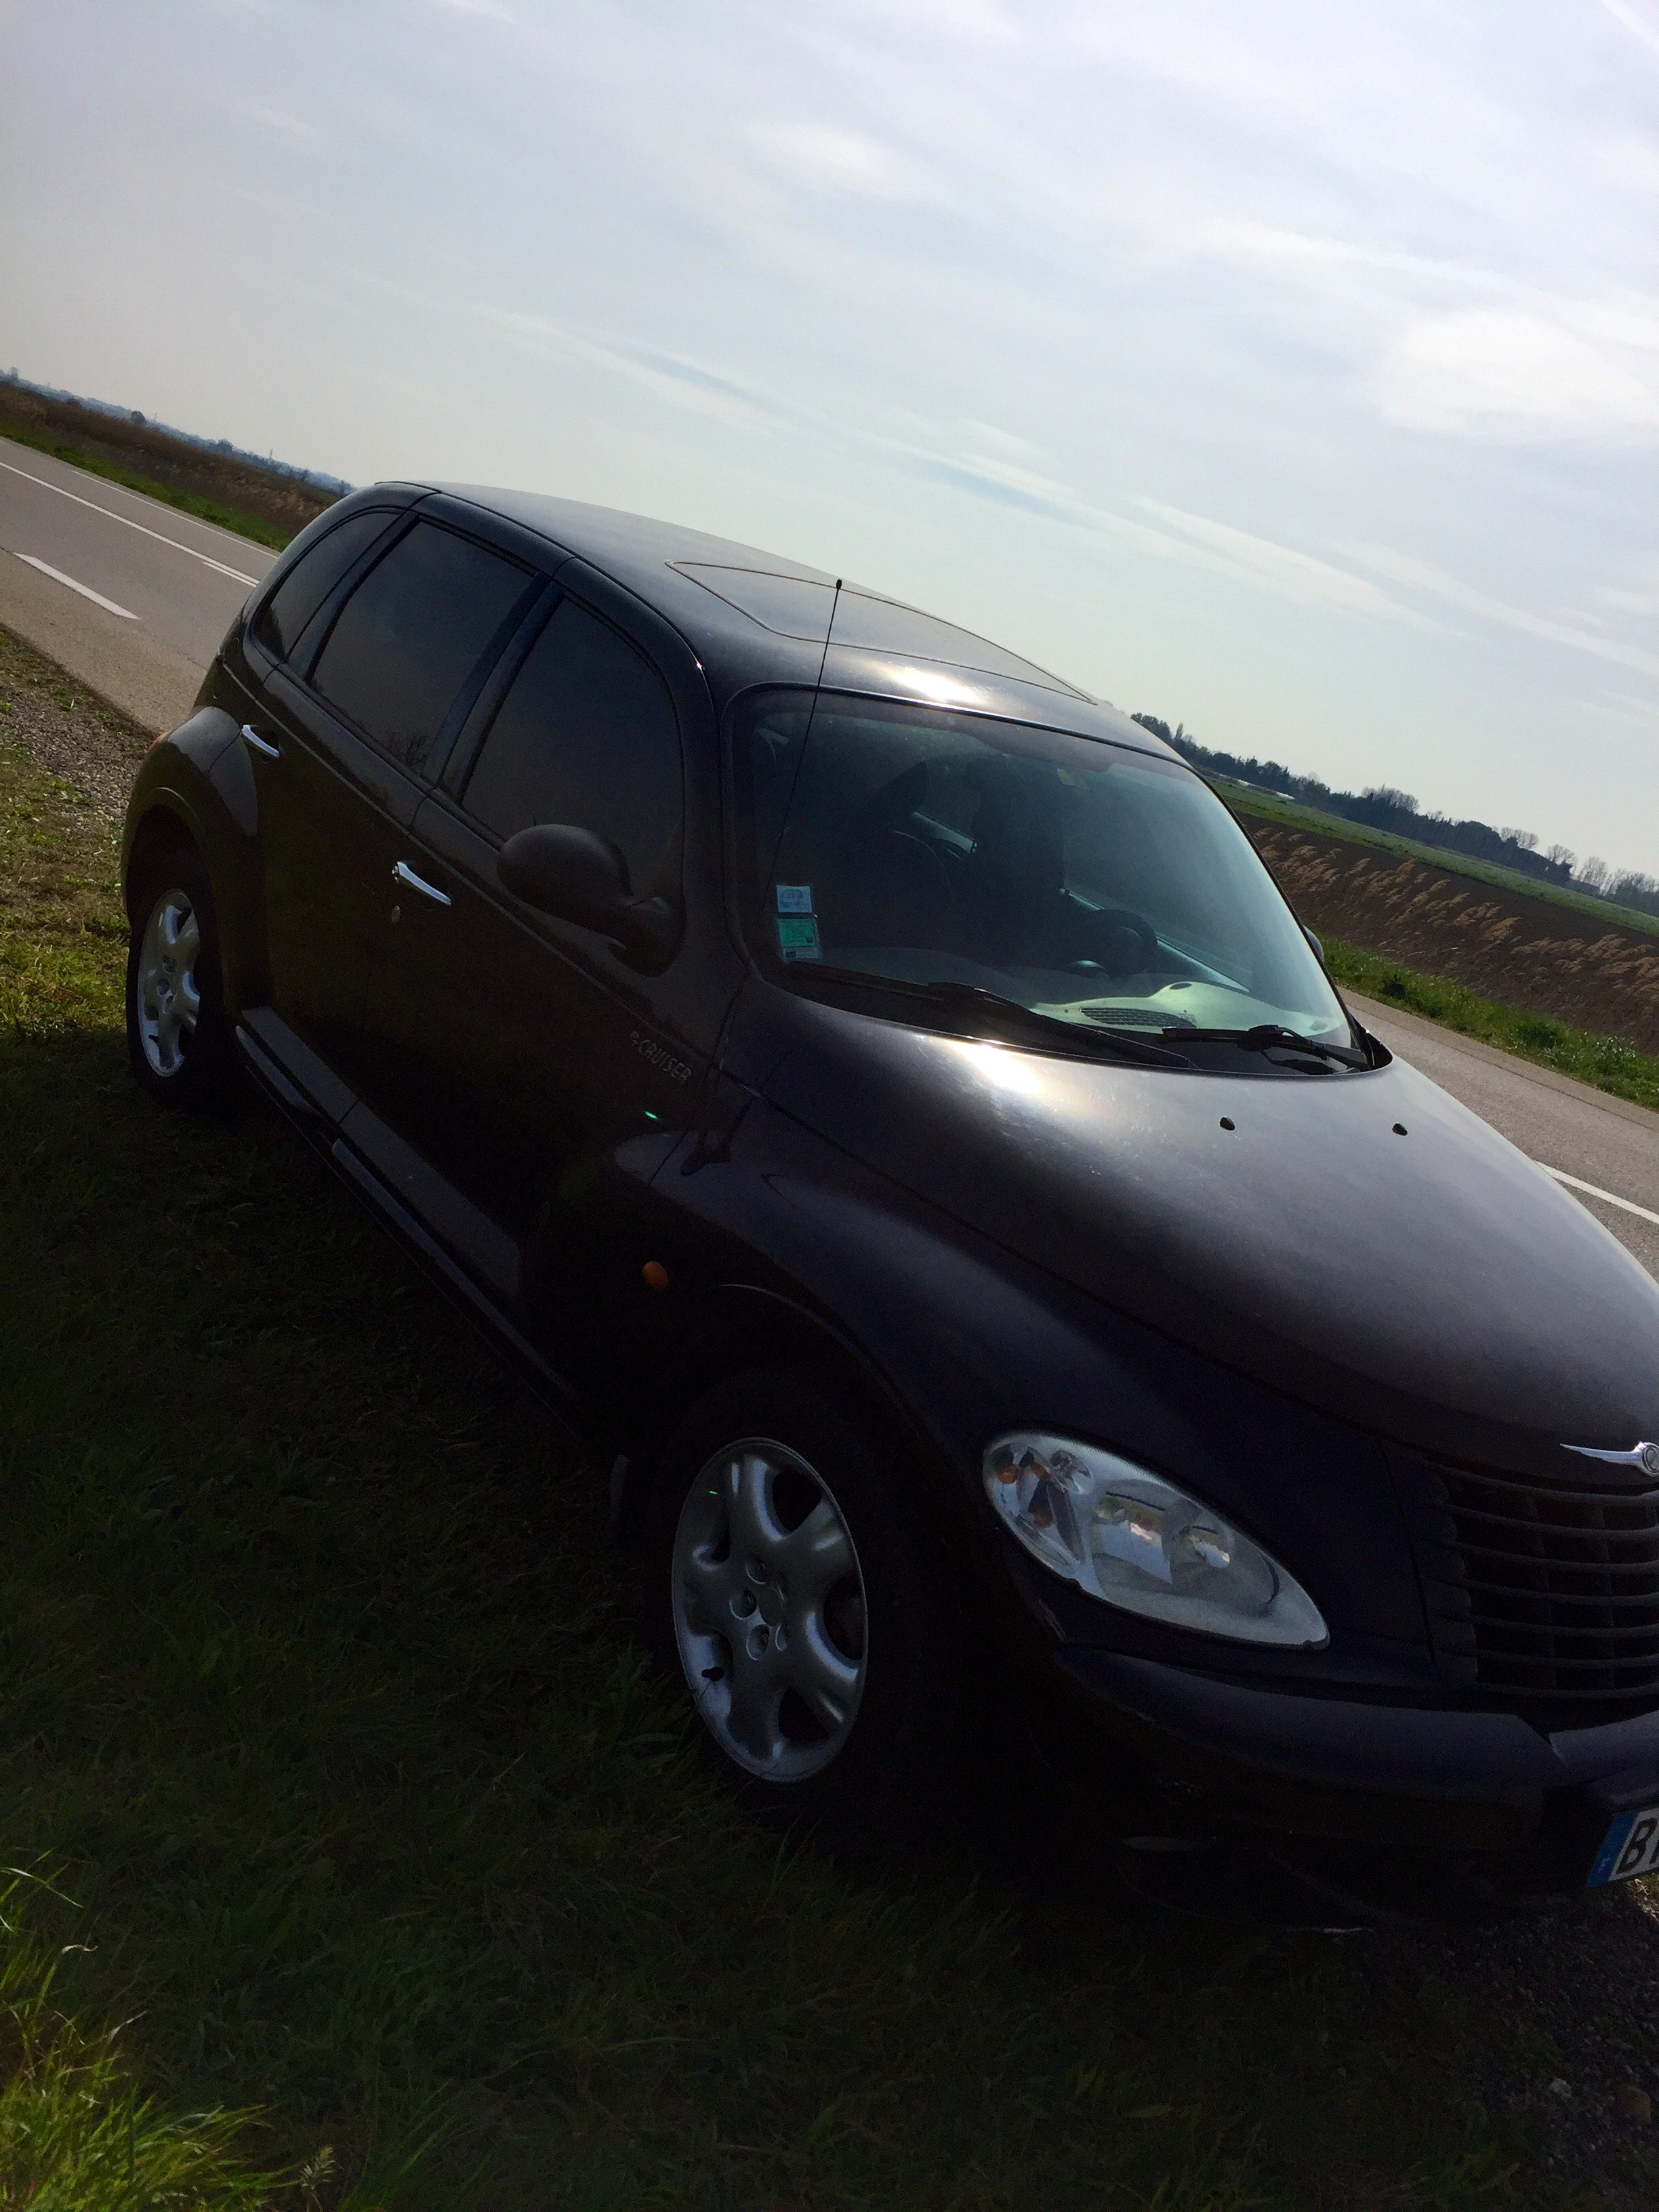 Chrysler Pt cruiser 2,2 CRD 120 Touring, 2002, Diesel - Compacte Toulouse (31)